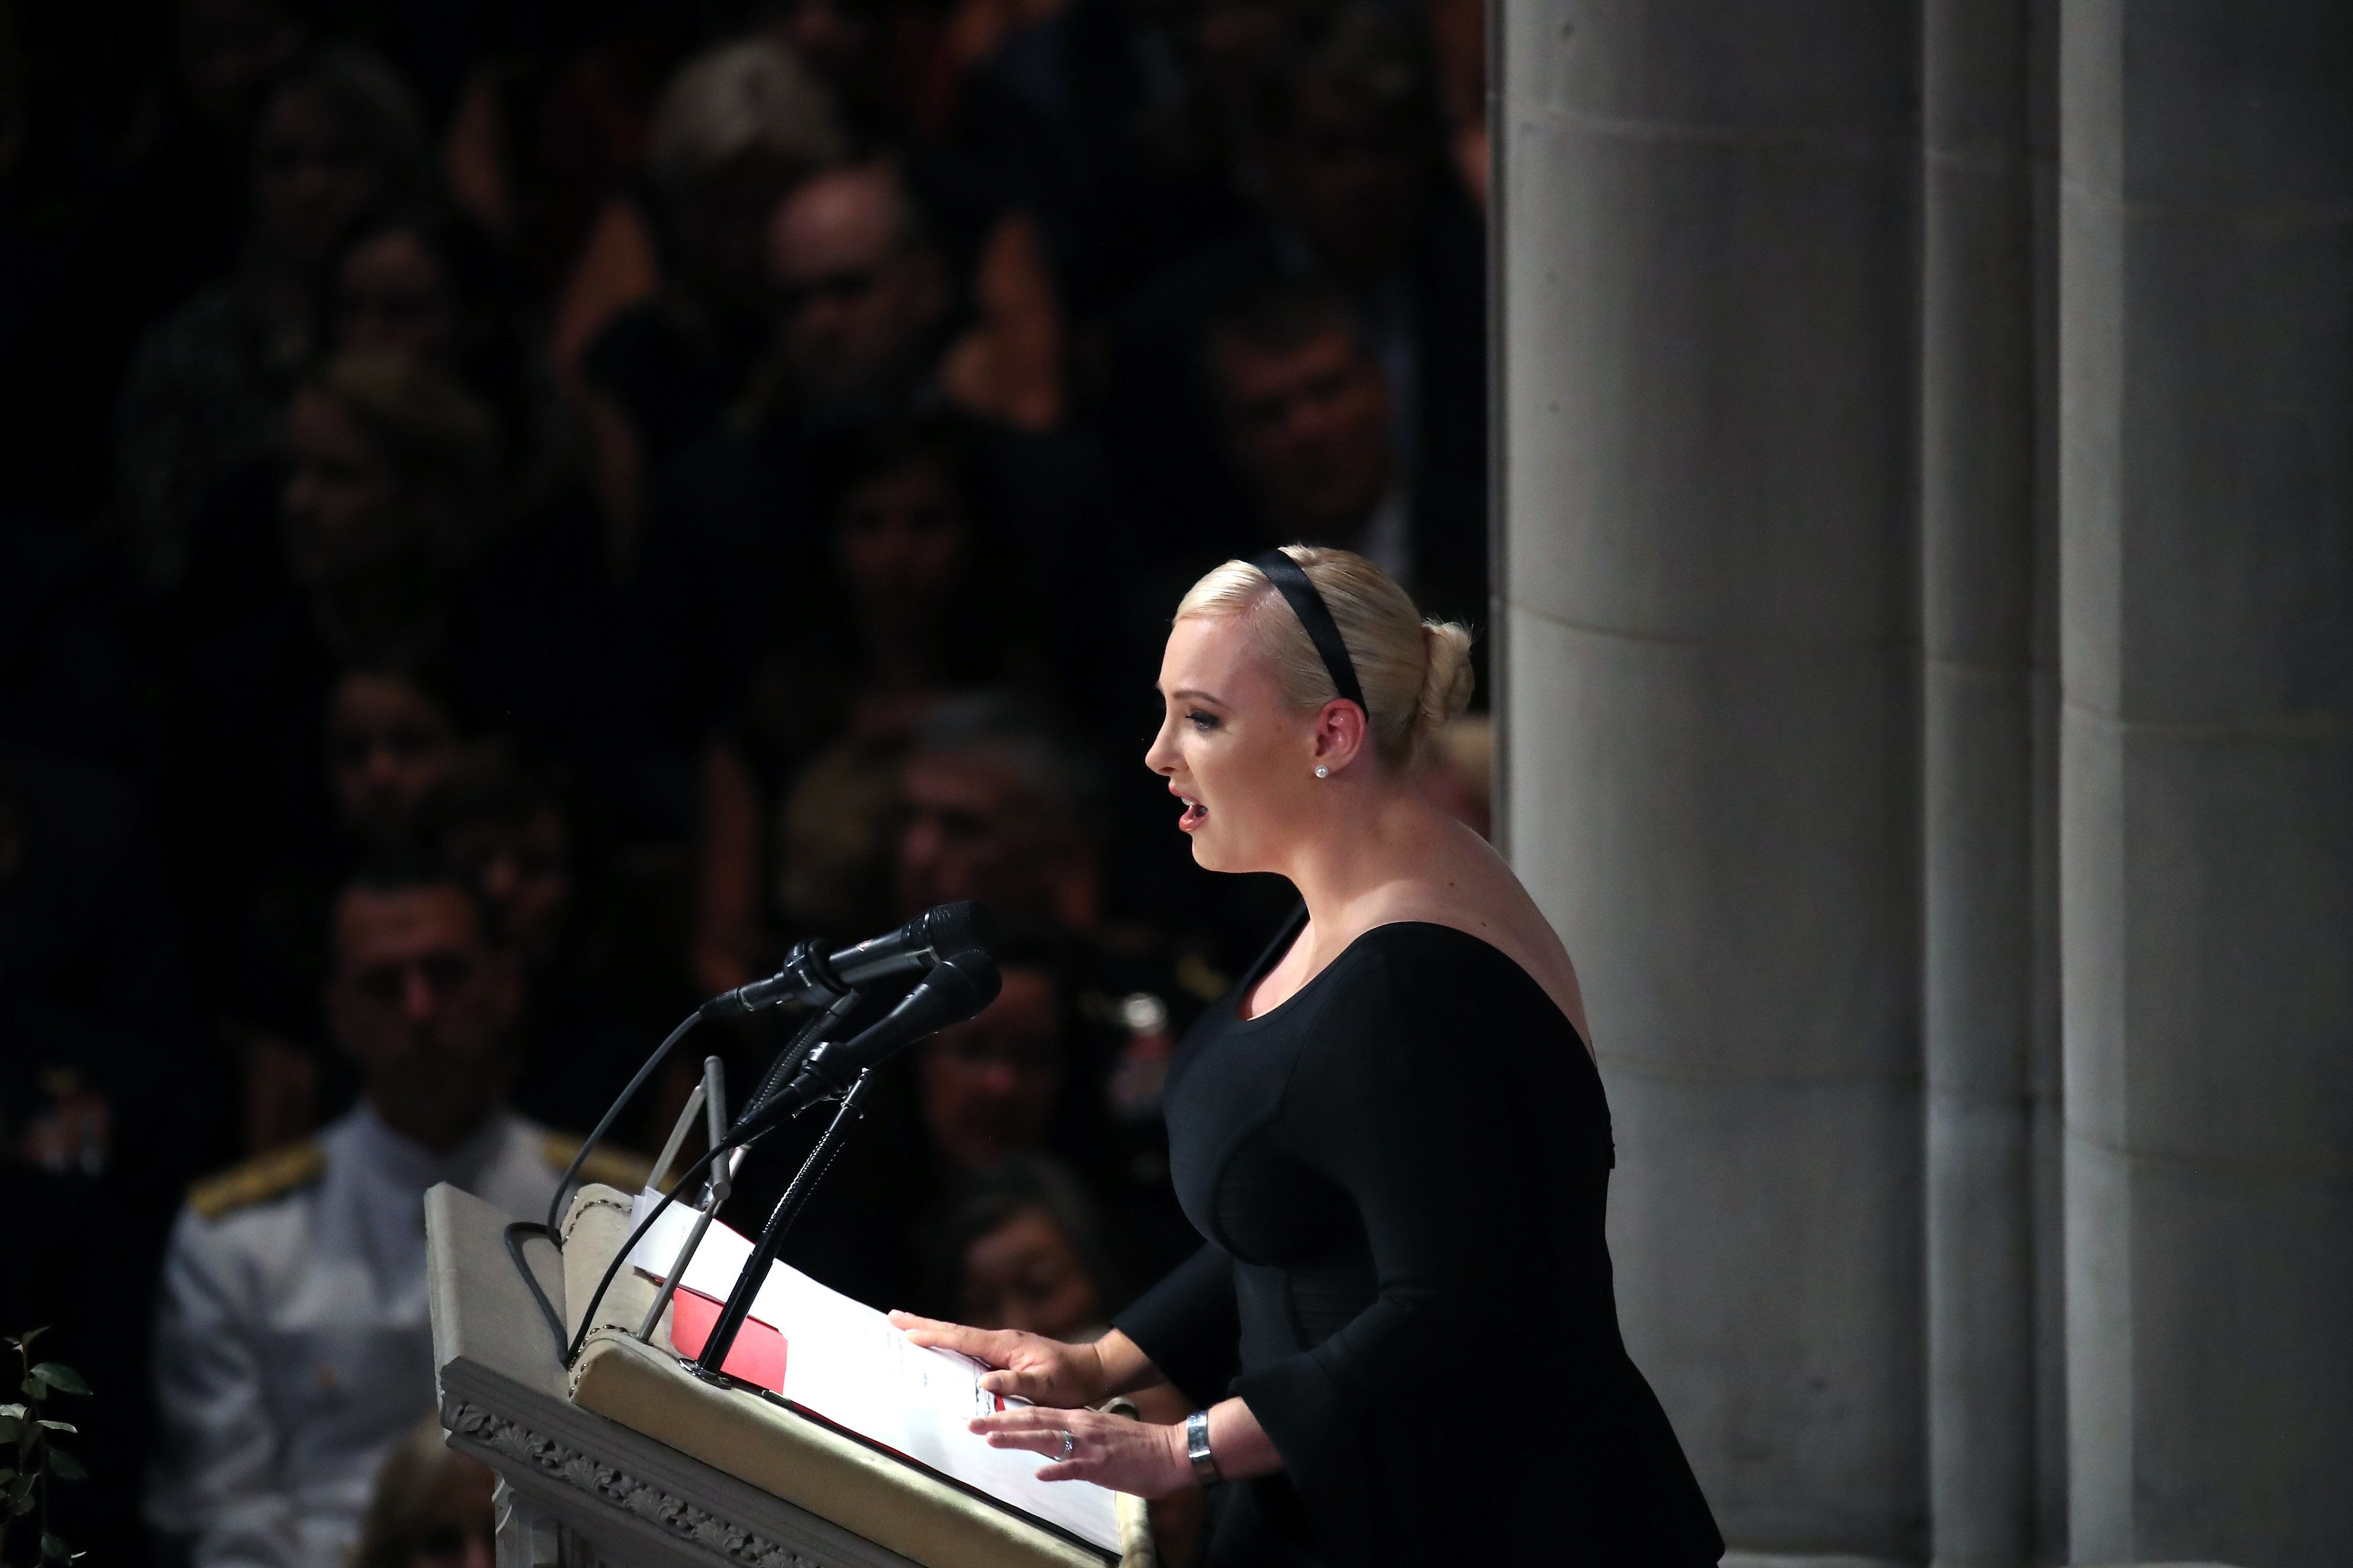 Meghan McCain Takes Aim At Trump In Eulogy For John McCain